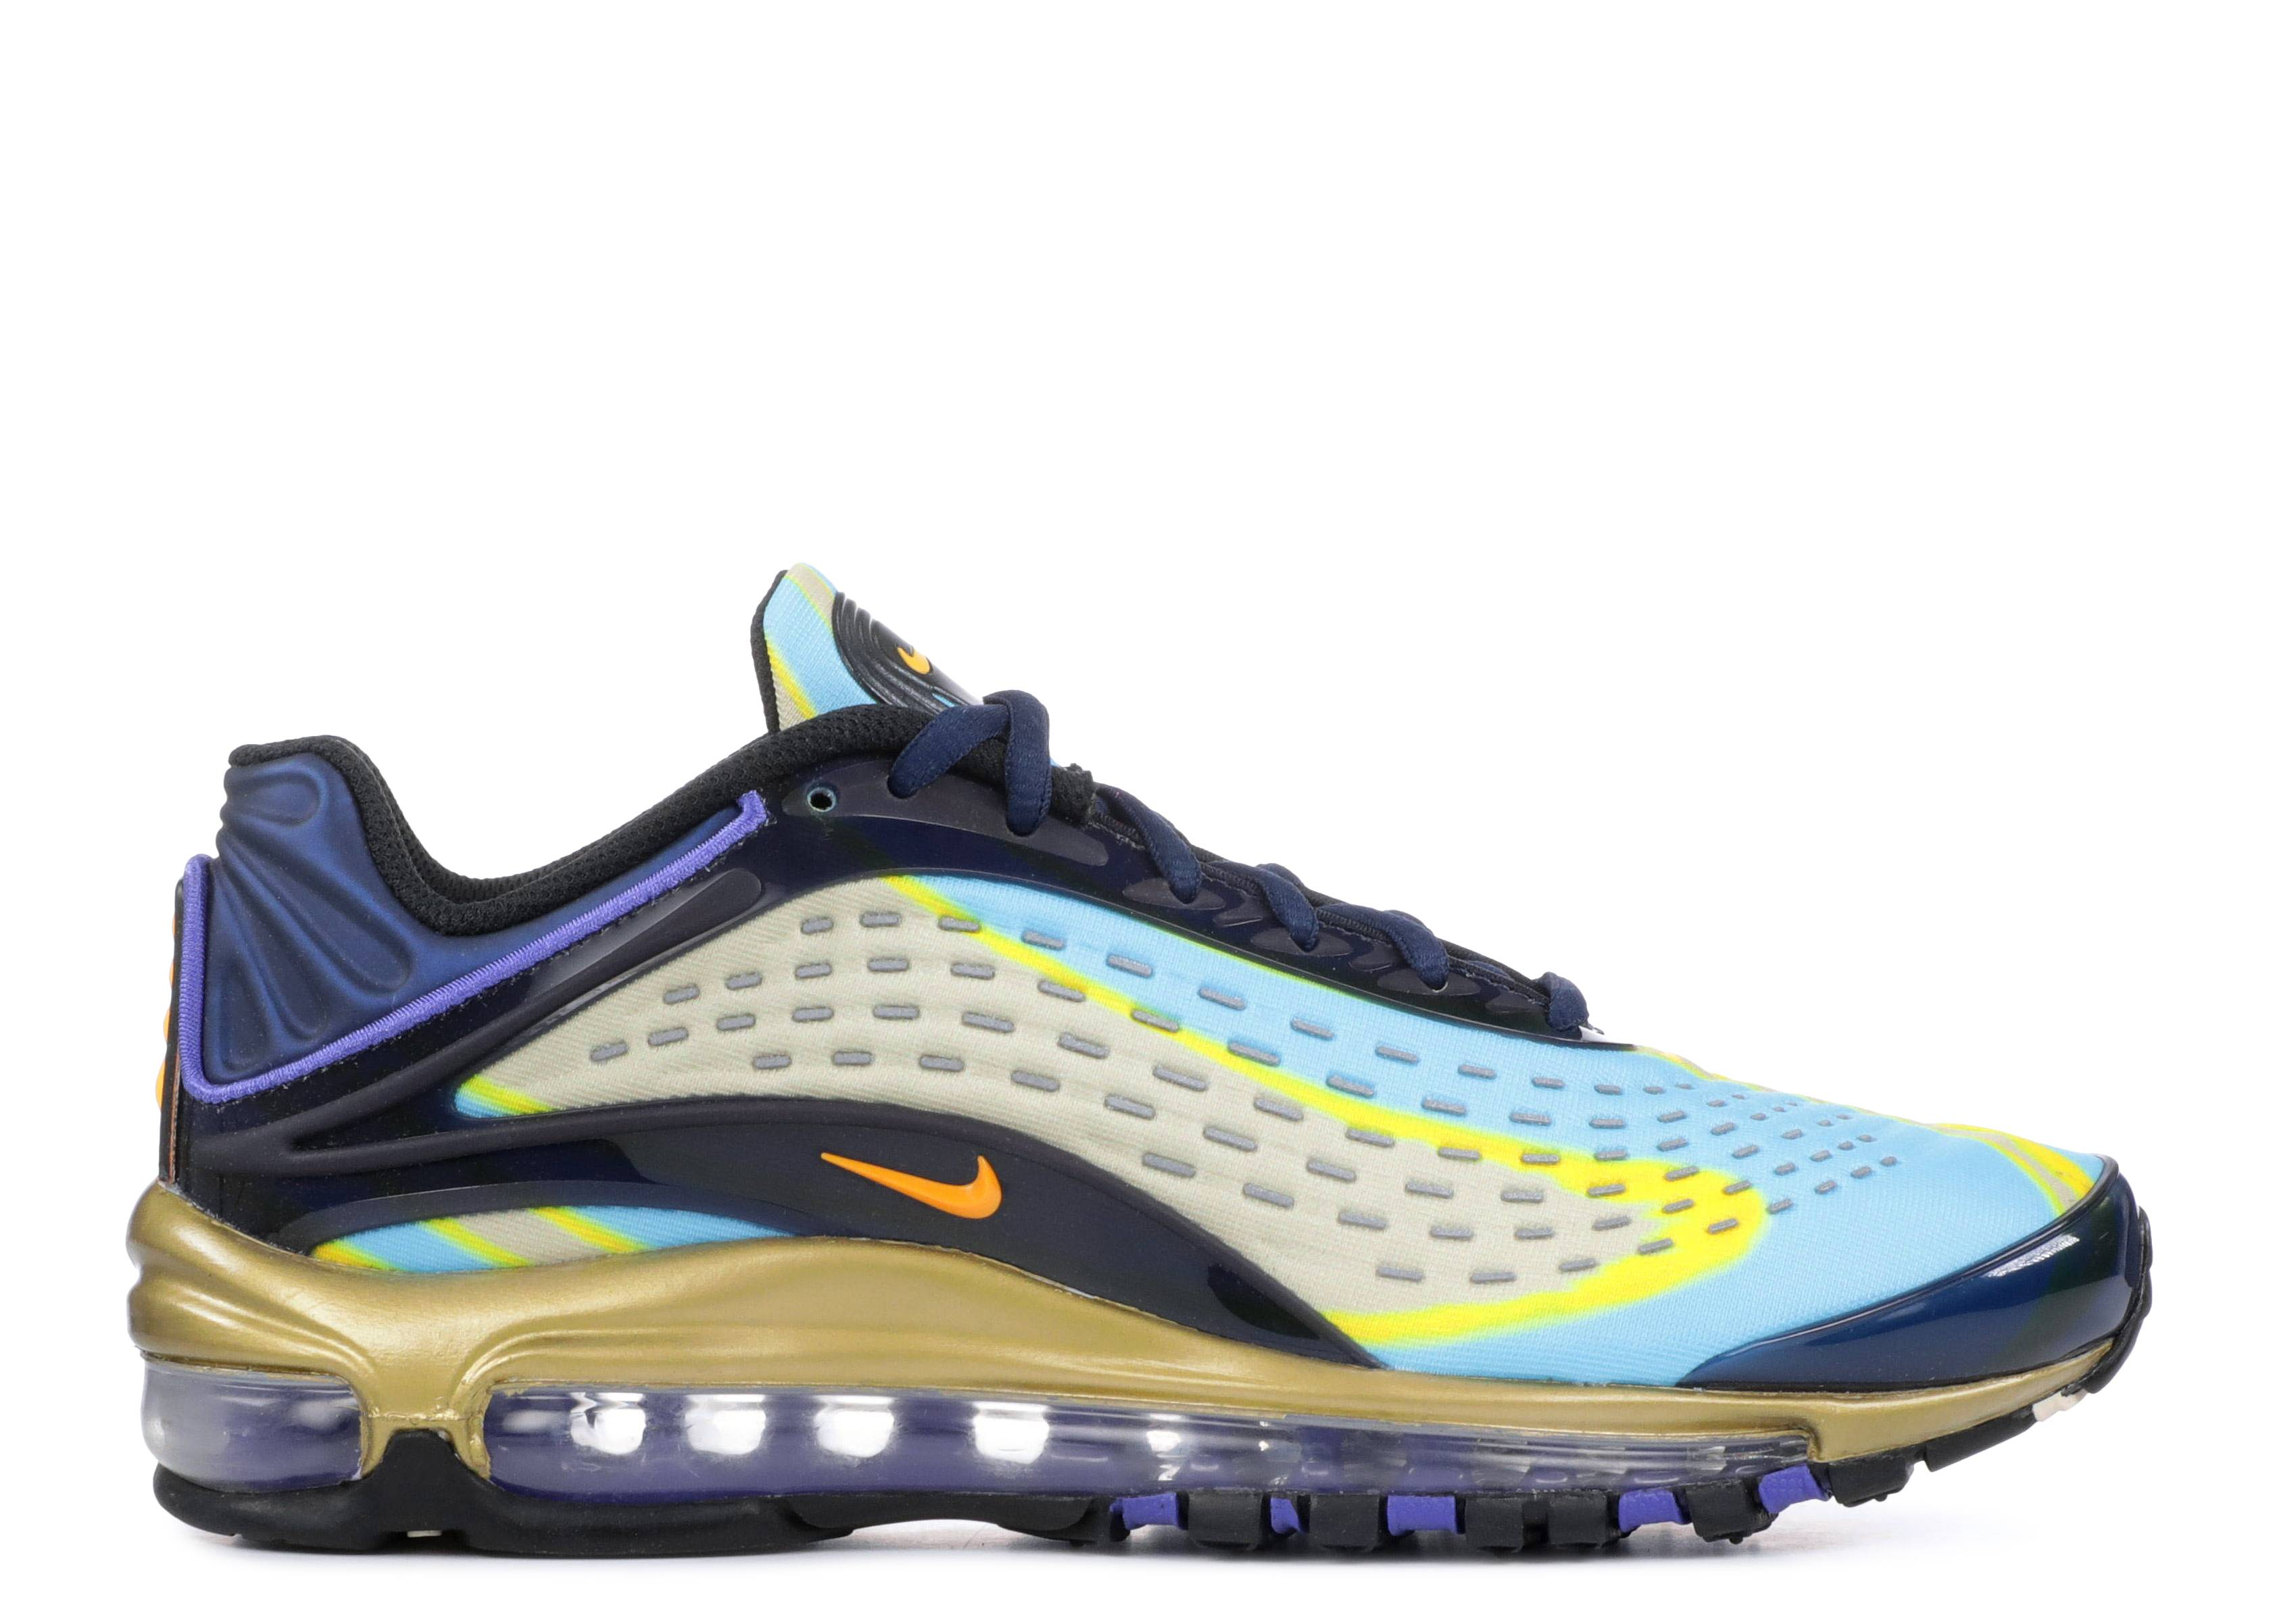 8294a78de3 Nike Air Max Deluxe (gs) - Nike - ar0115 401 - midnight navy/ laser ...